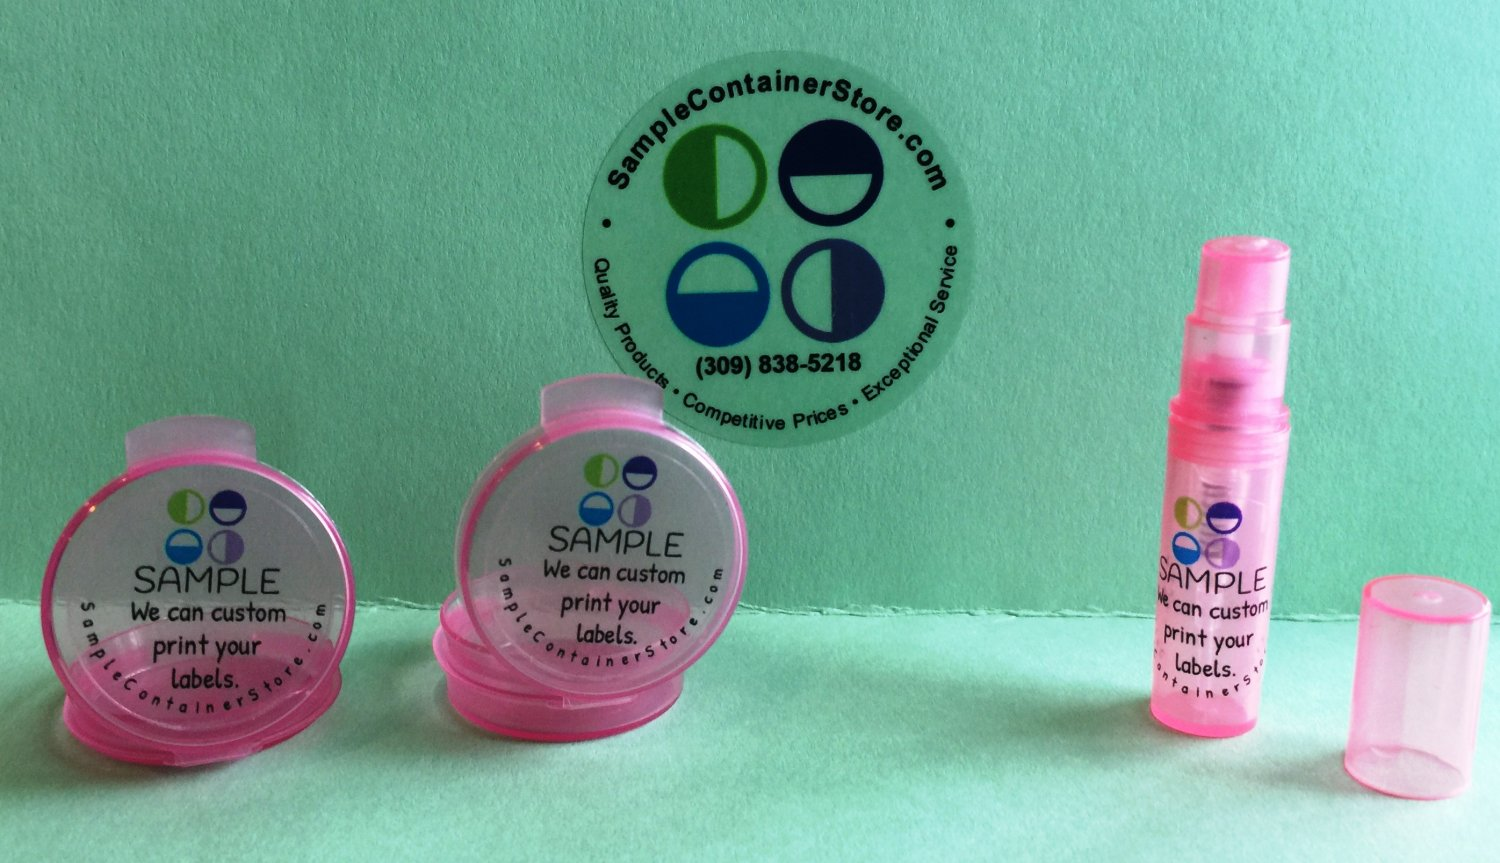 63 - PINK Sample Container KIT w/ Preprinted labels for each container READ for instructions